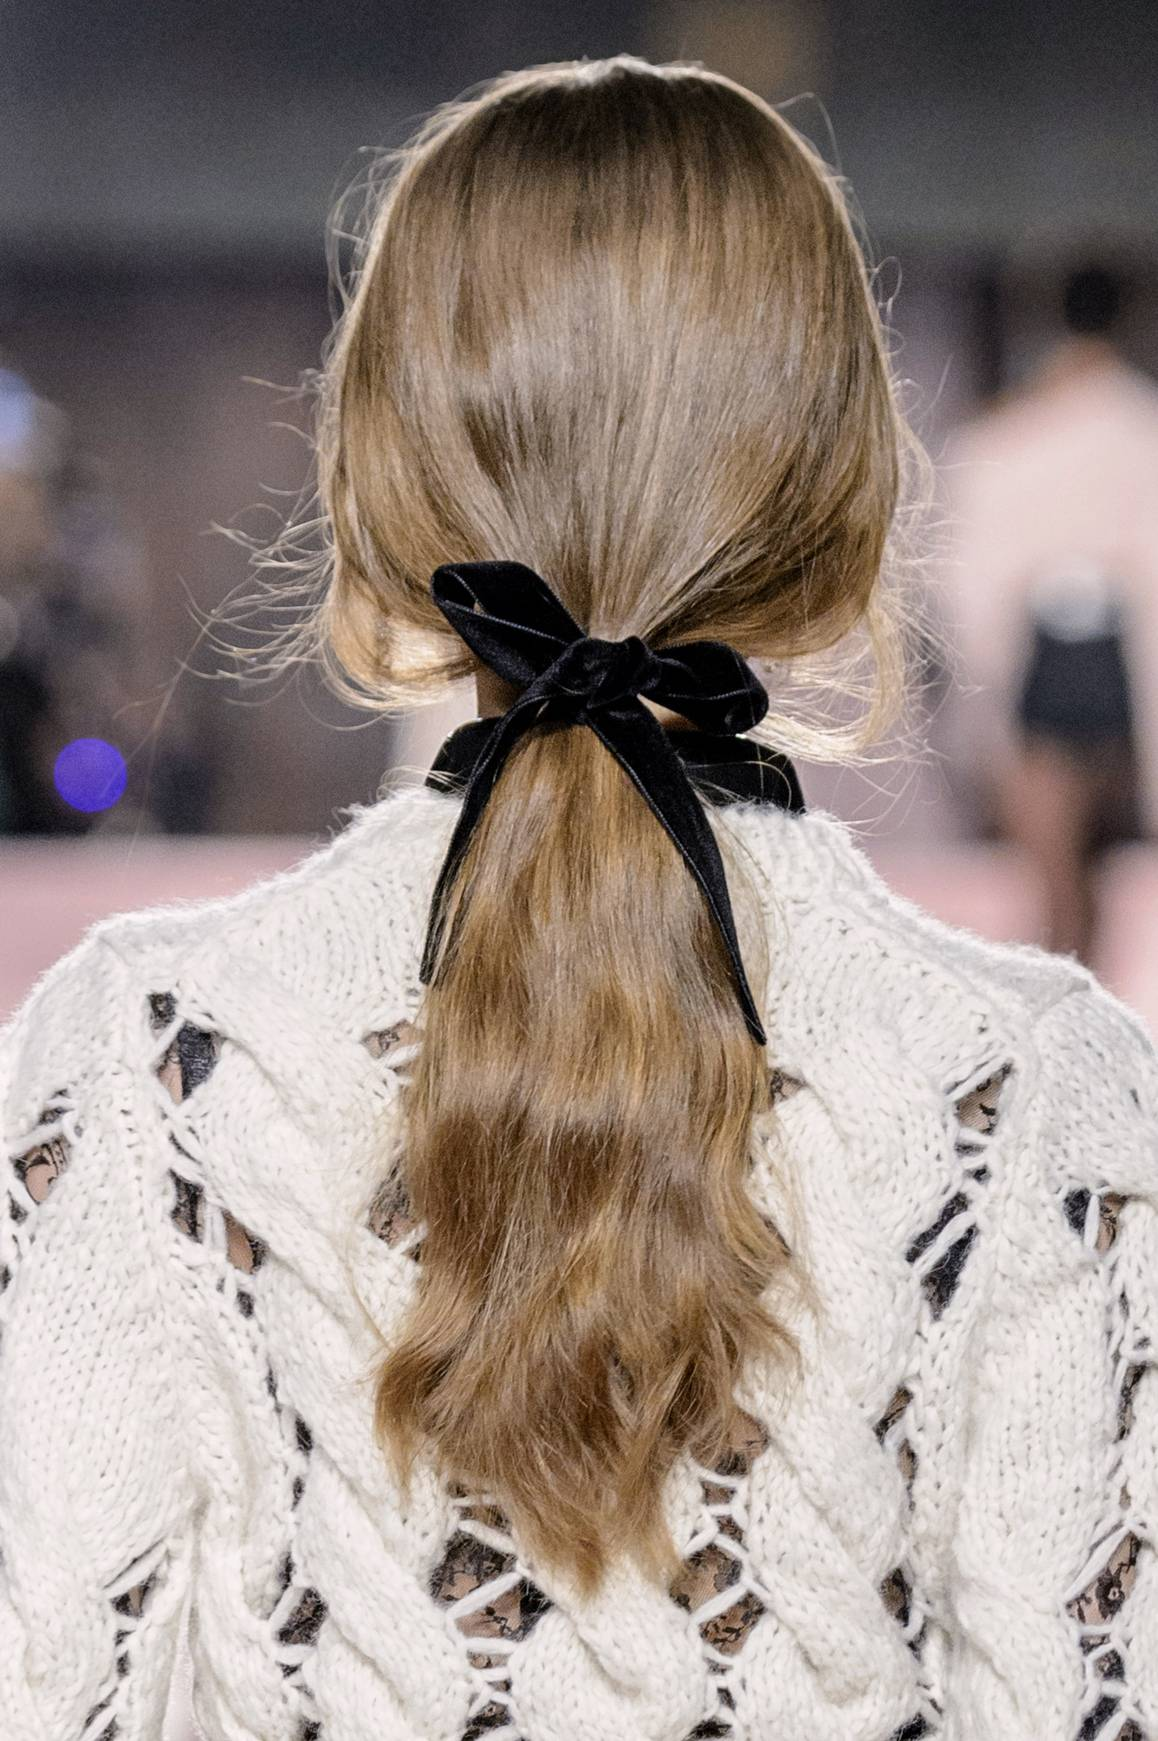 hair-styles-what-to-wear-christmas-day-dinner-holiday-outfits-winter-ribbon-ponytail.jpg